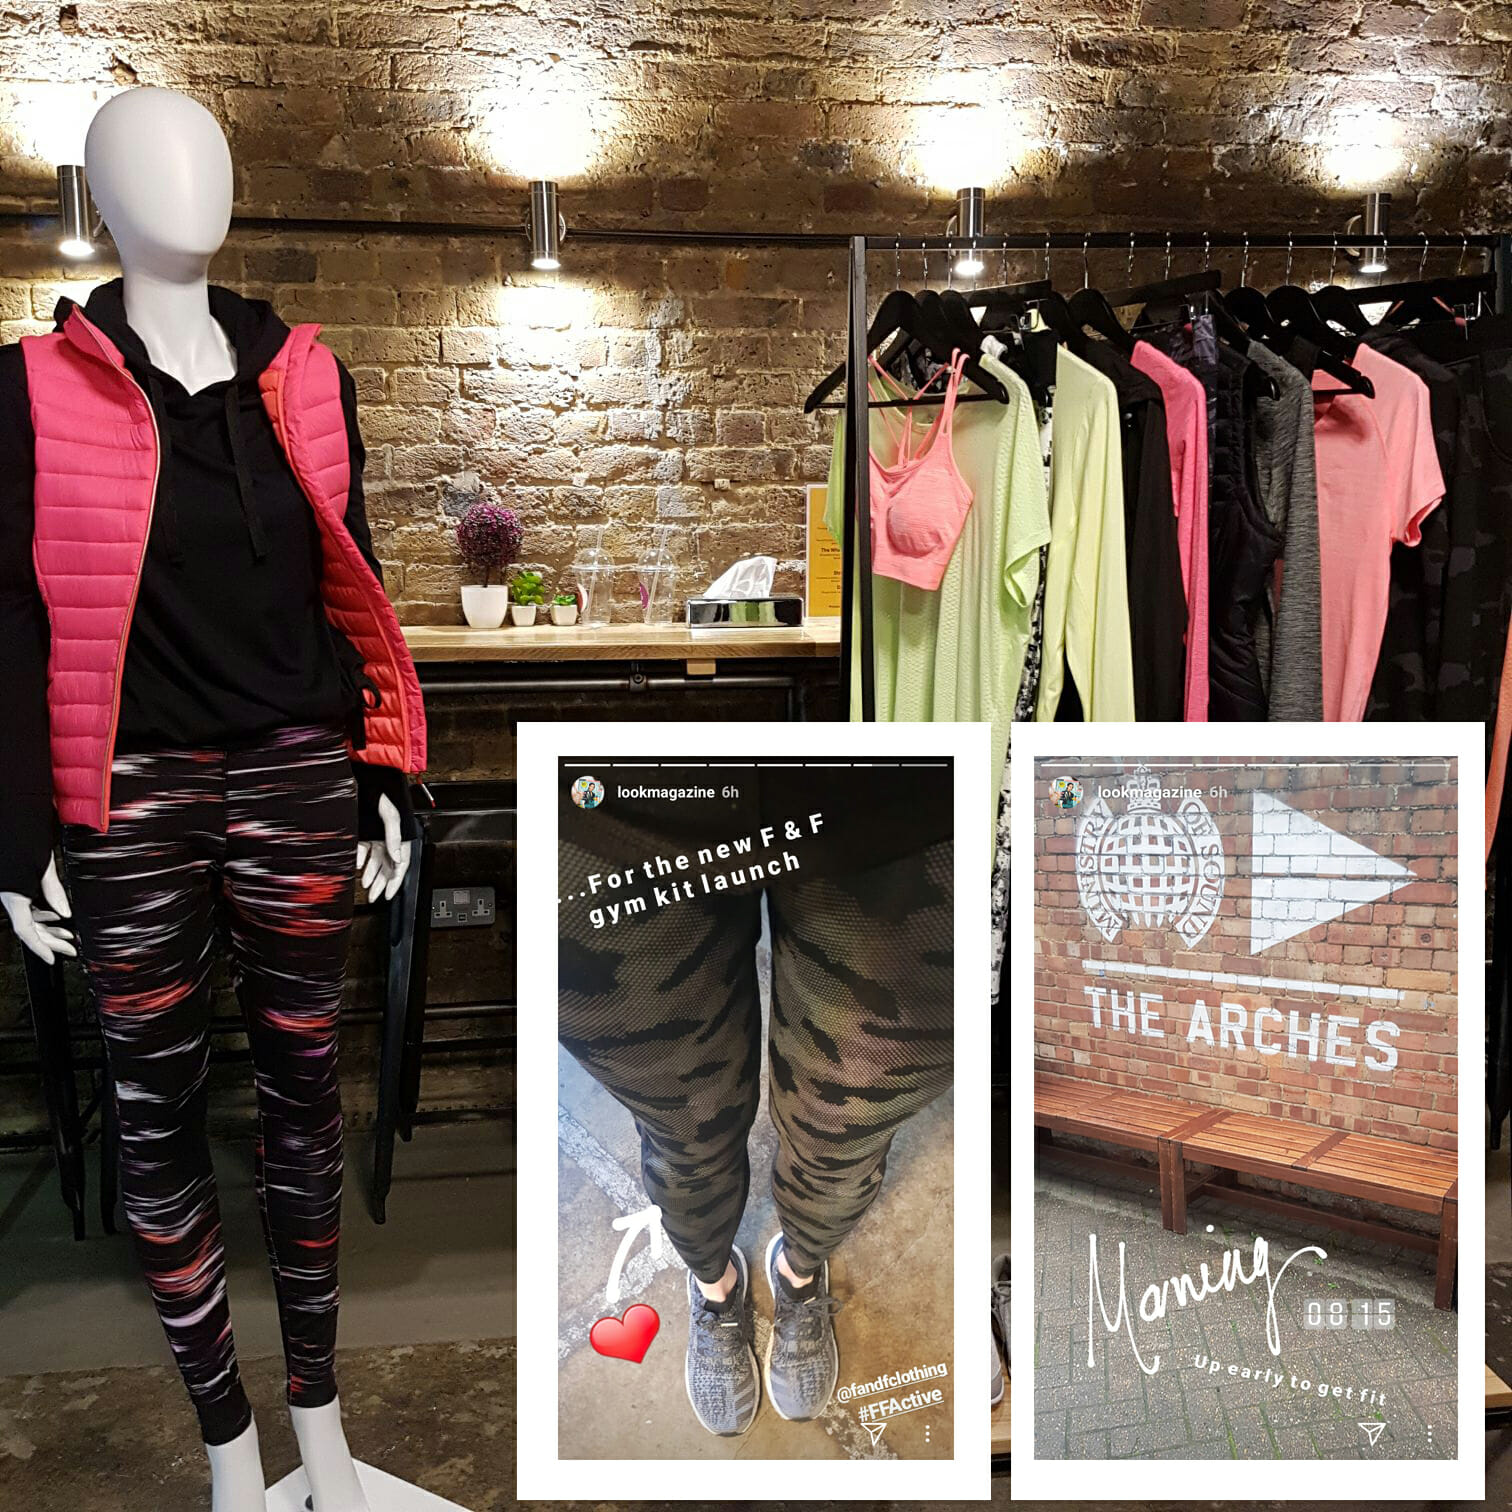 Igniting interest in the new F&F activewear range at Tesco